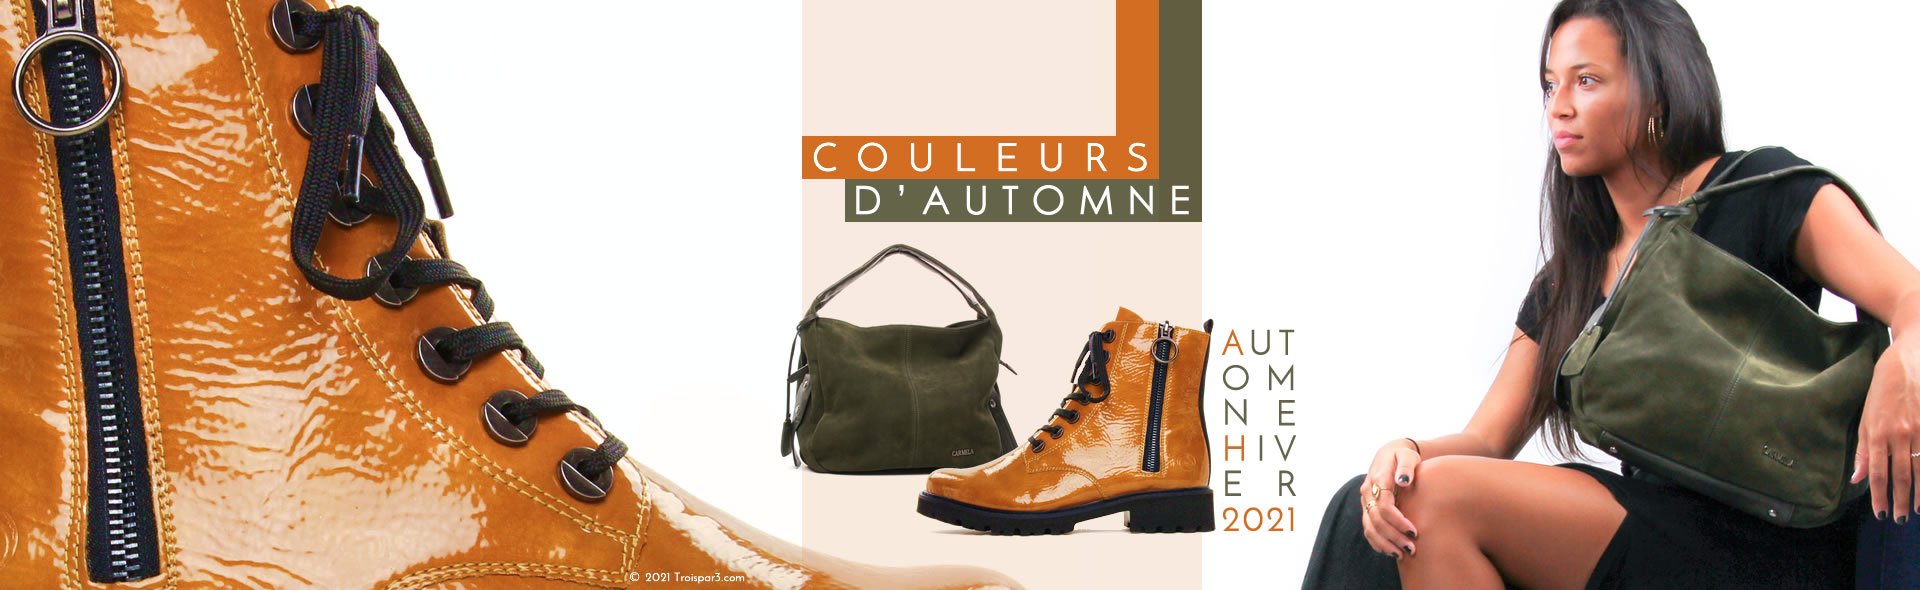 chaussures automne hiver 2021